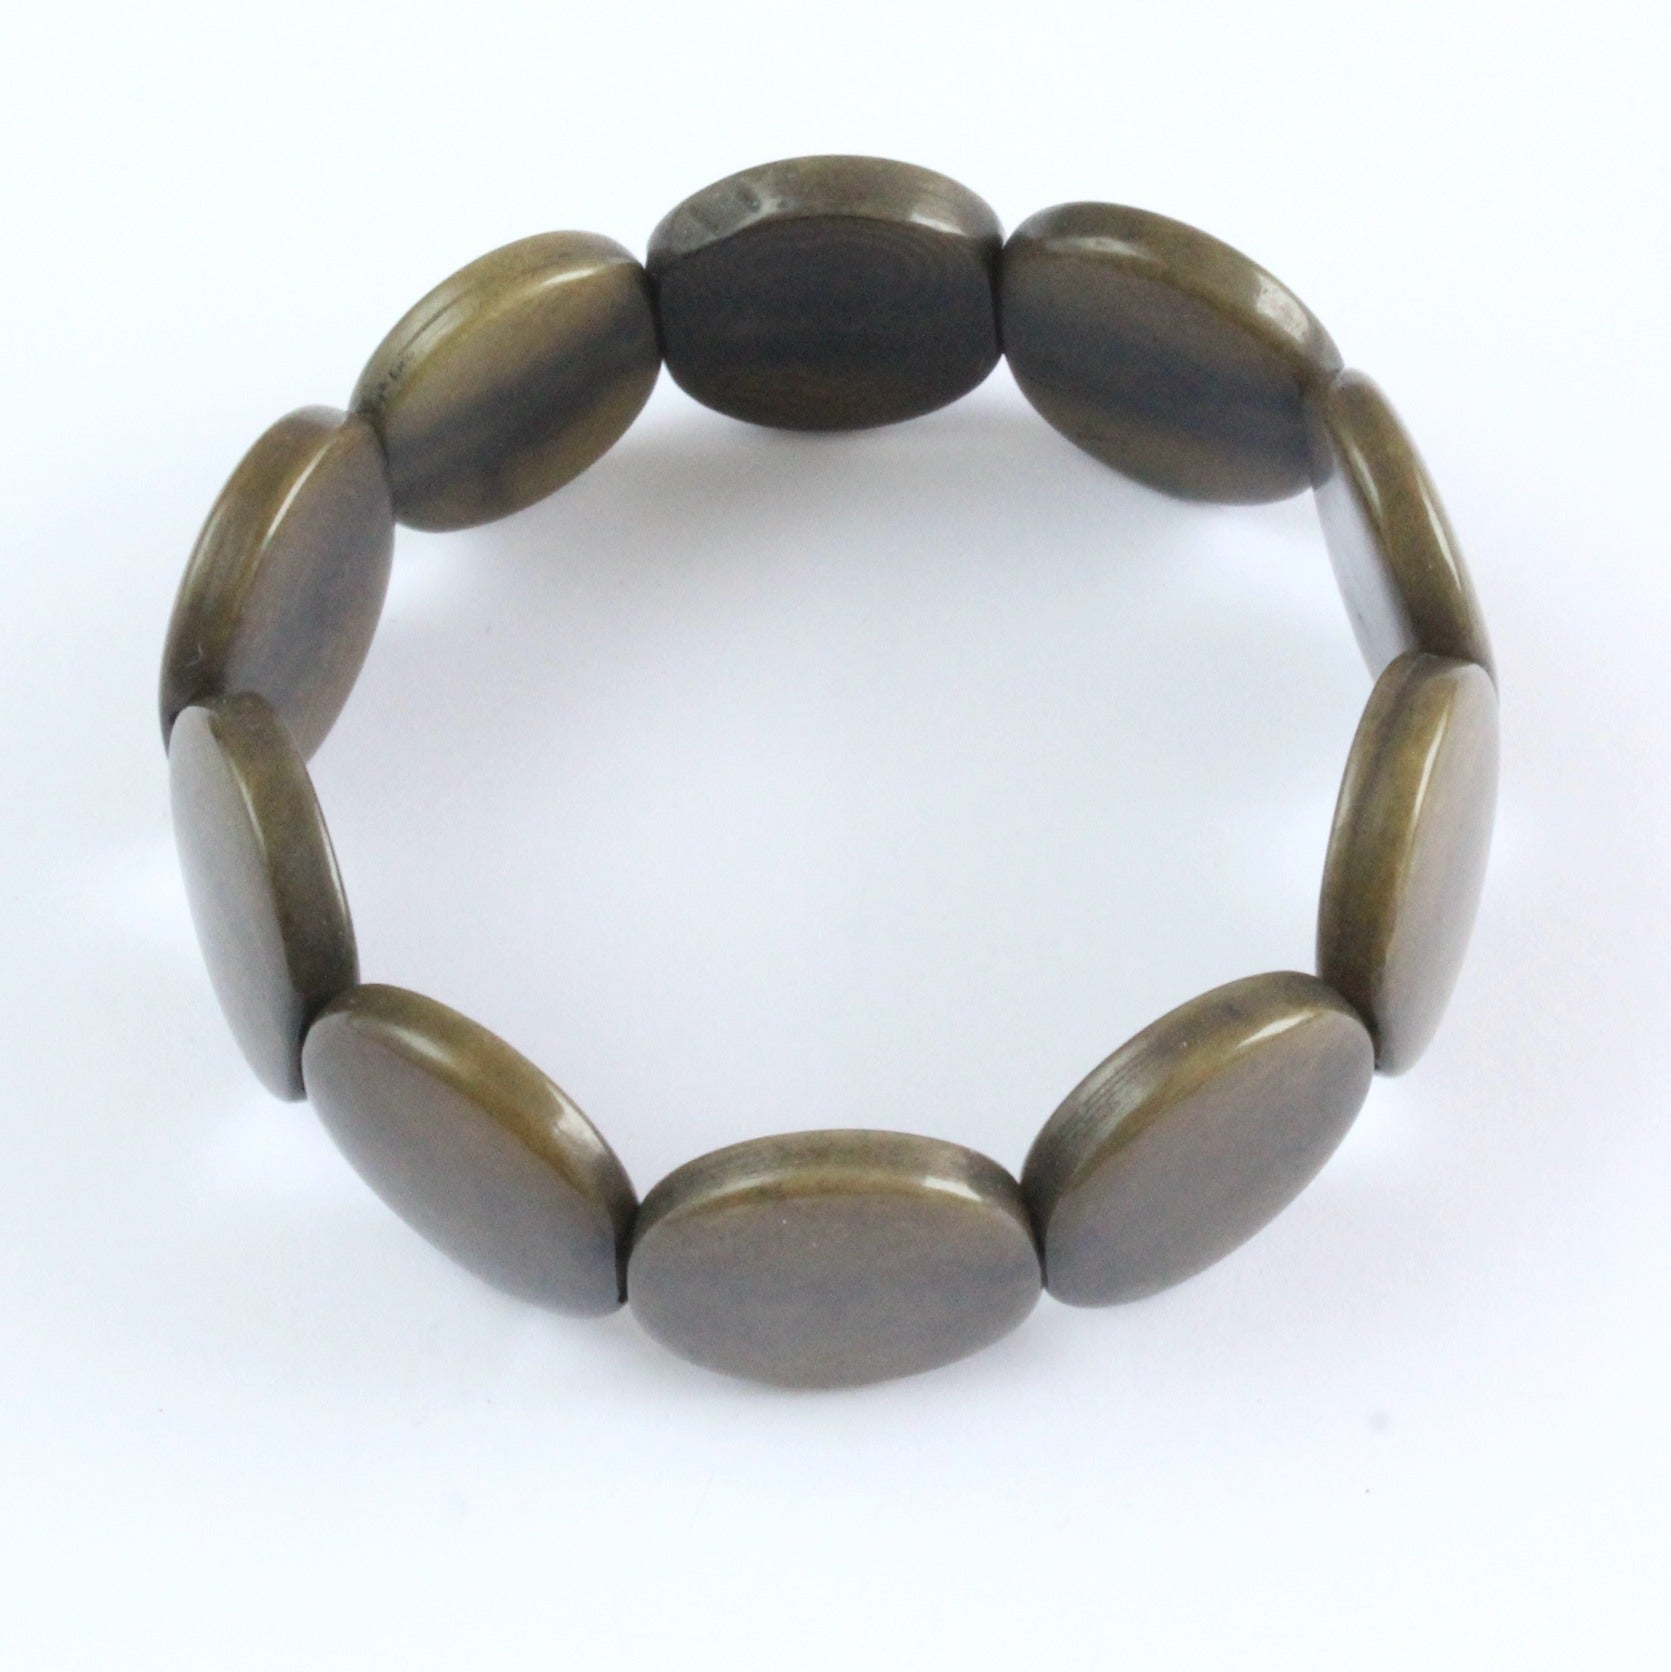 Handmade bracelet, tagua nut, sustainable,  colourful, olive